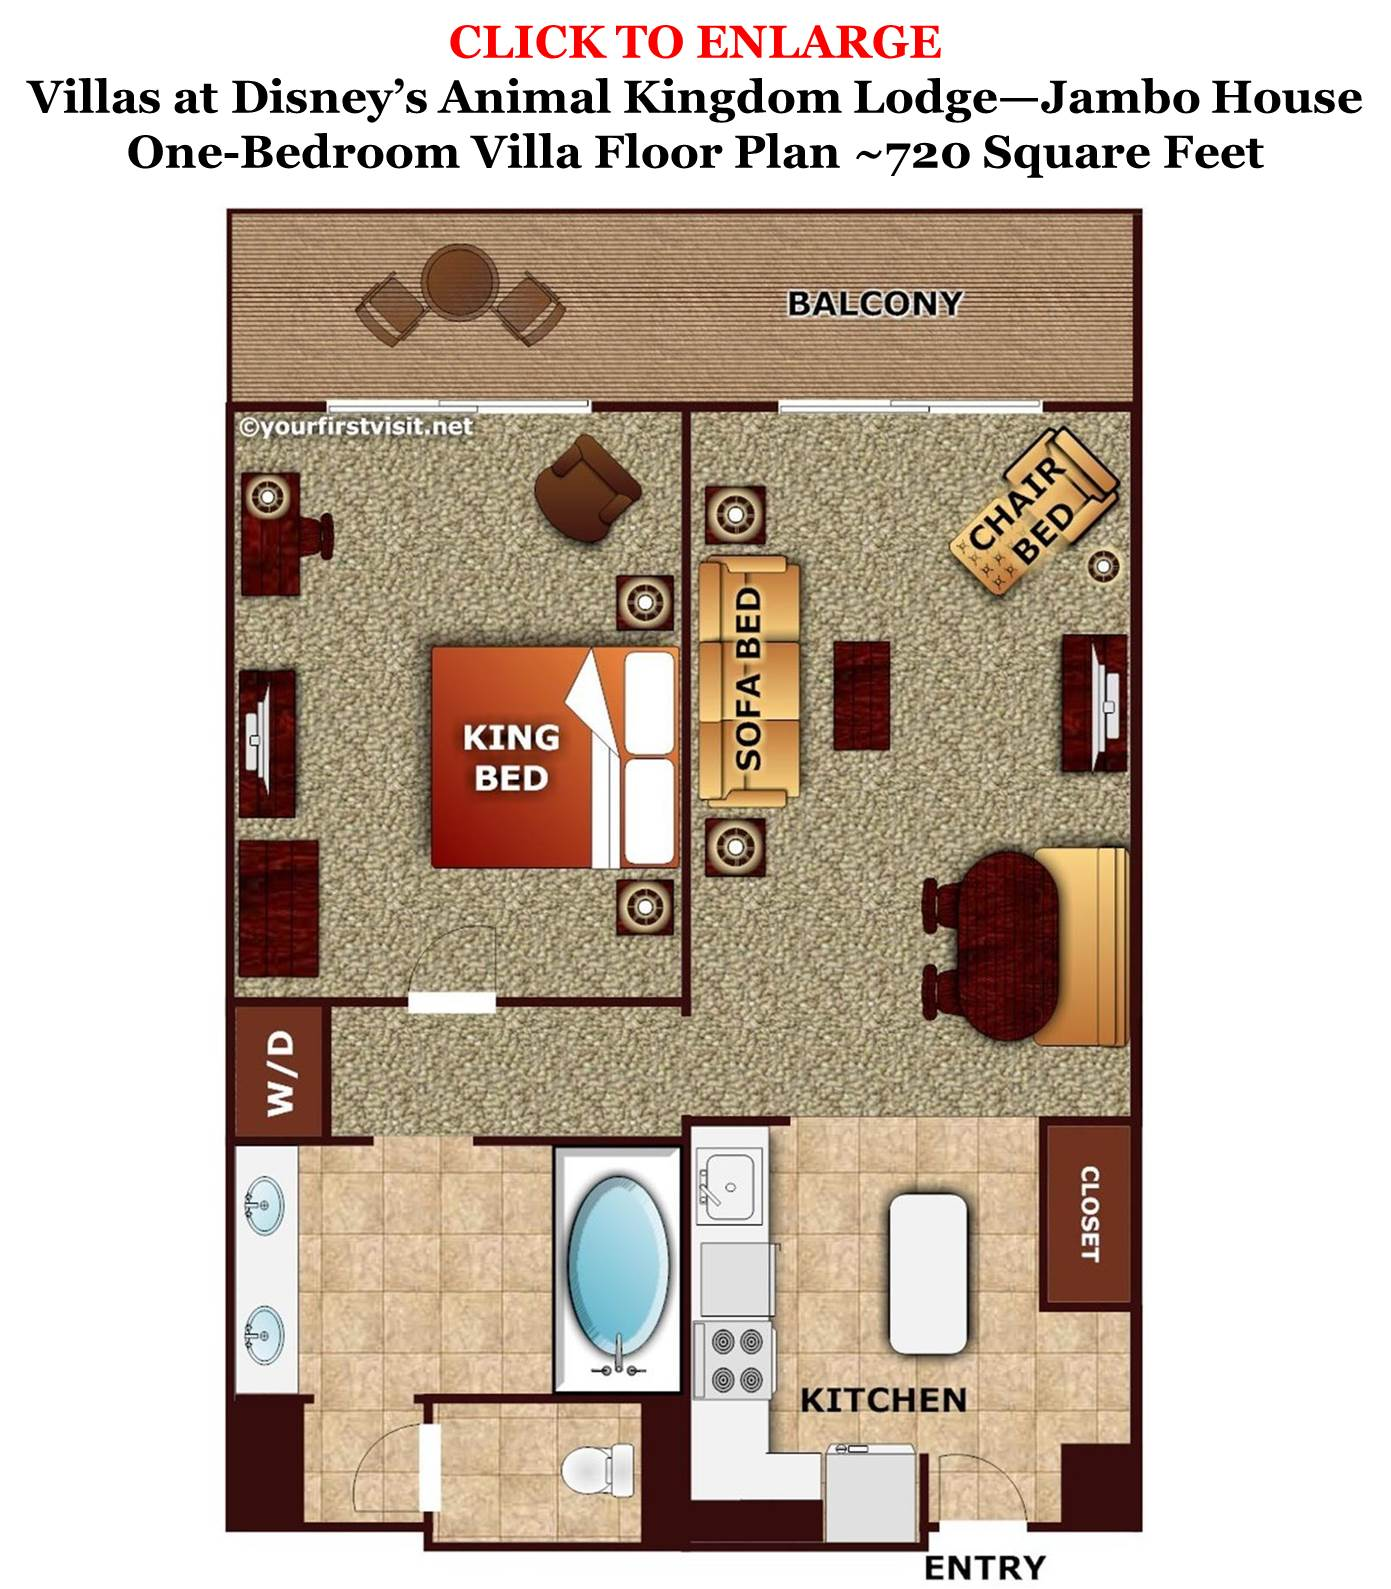 One Bedroom Villa Floor Plan Jambo House Villas From